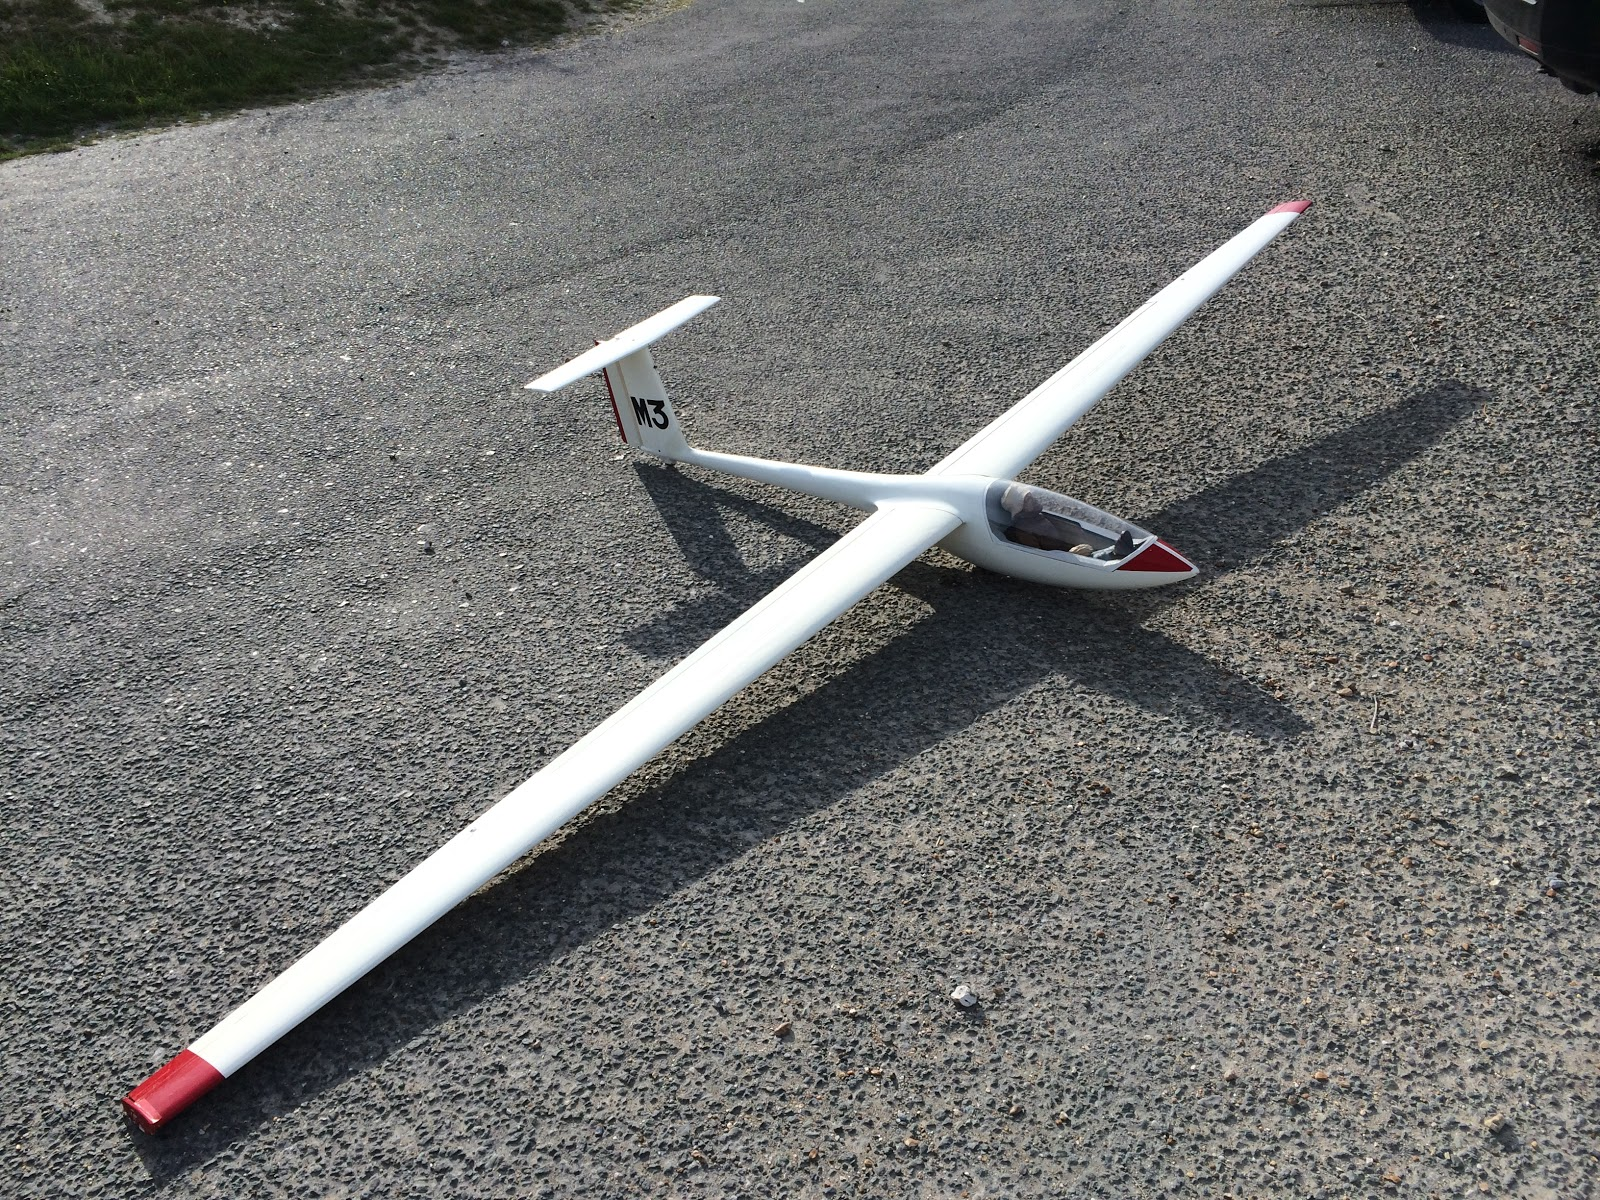 Slope Soaring Sussex: Scale Gliders